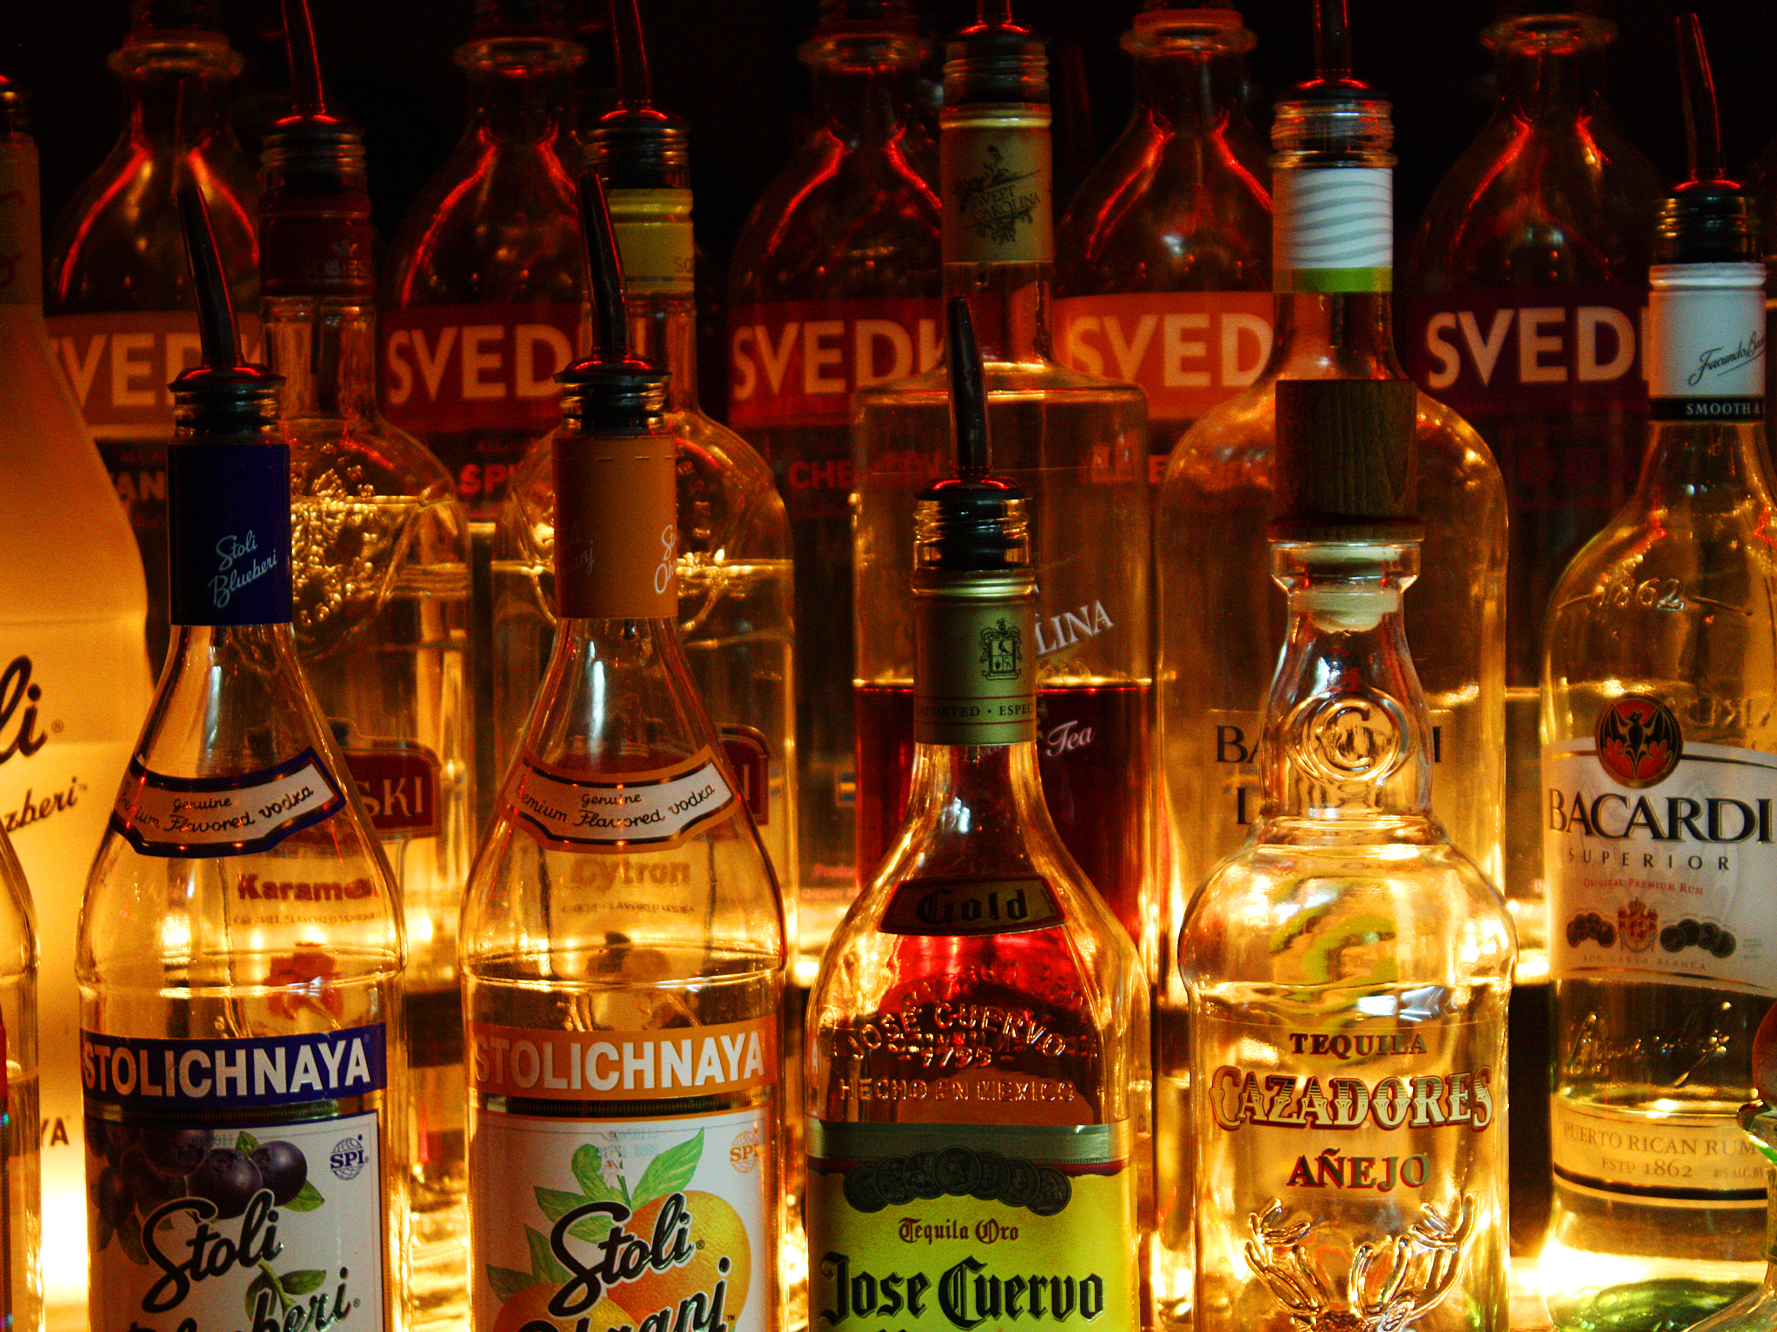 Excessive Drinking Causes 10 Percent Of Deaths In Working-Age Adults